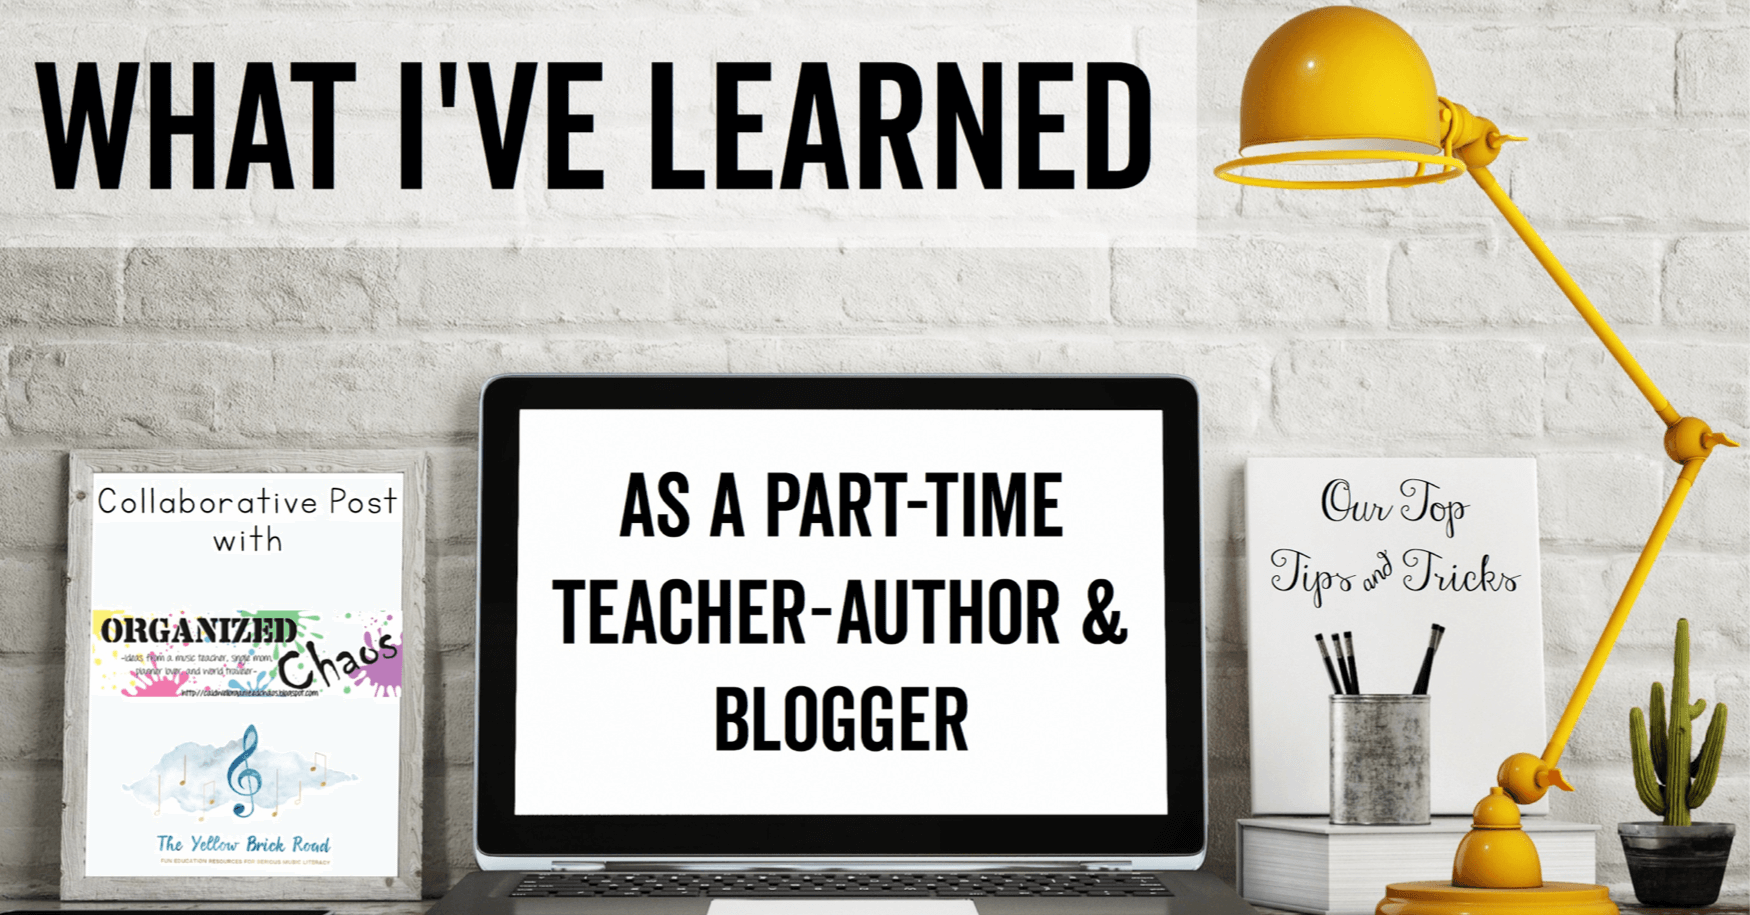 What I've Learned as a Full-Time Teacher-Author and Blogger